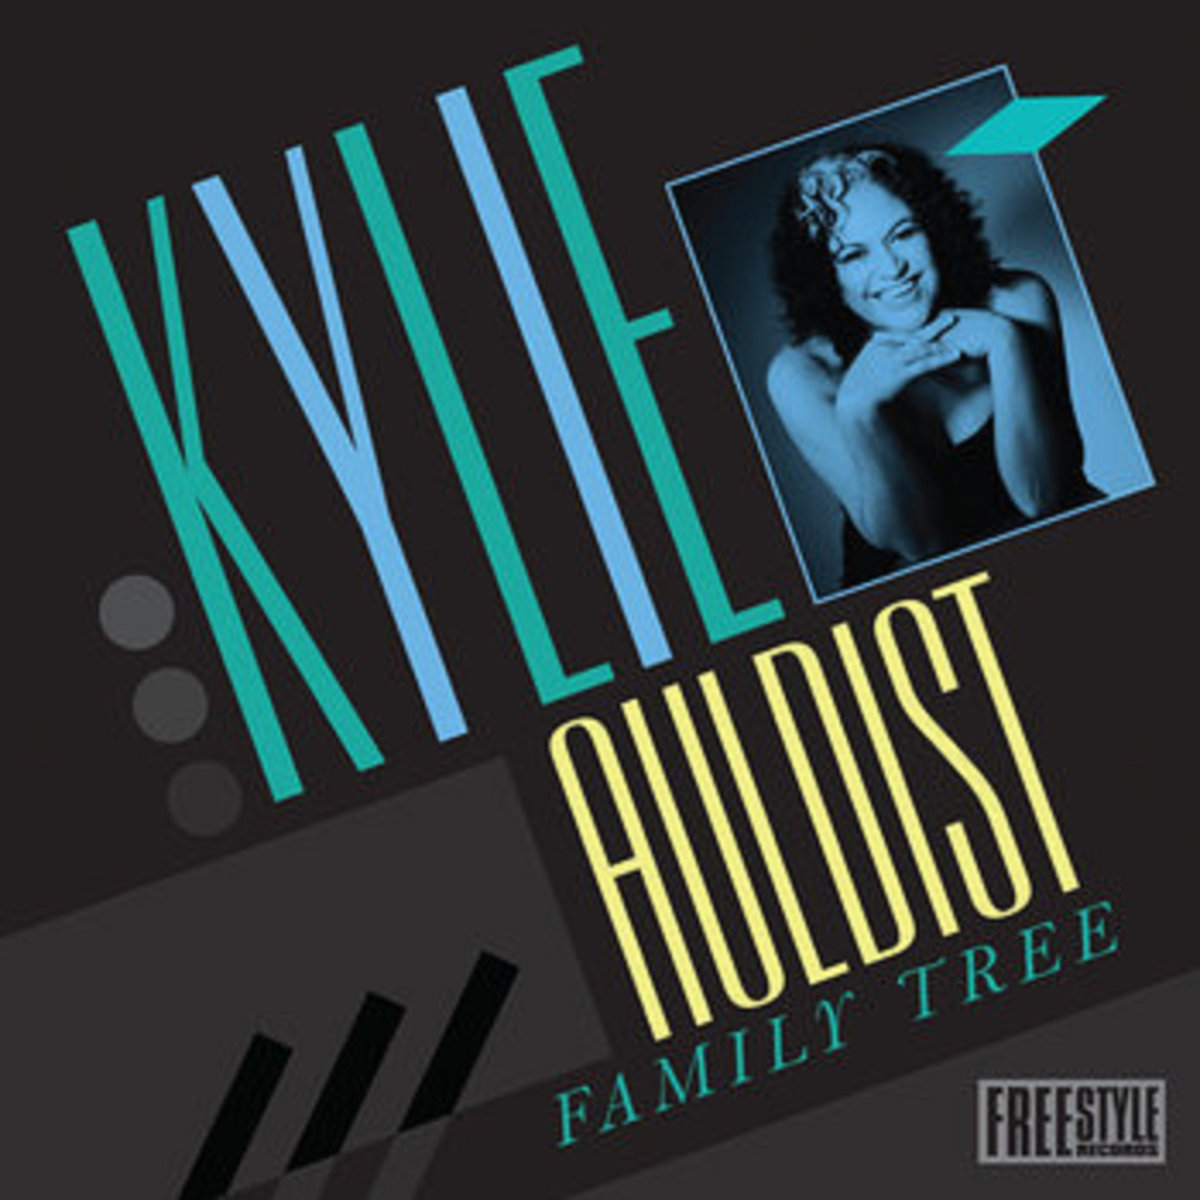 114. Kylie Auldist - 'family tree'    1. sensational 2. family tree 3. too easy 4. Saturday night 5. No change 6. Warming Up The Sun 7. Waste Of Time 8. Good Time Girl 9. Look Away 10. Rewards 11. Super Lucky CD/Digtal Freestyle FSRCD115 (Freestyle) U.K 2016